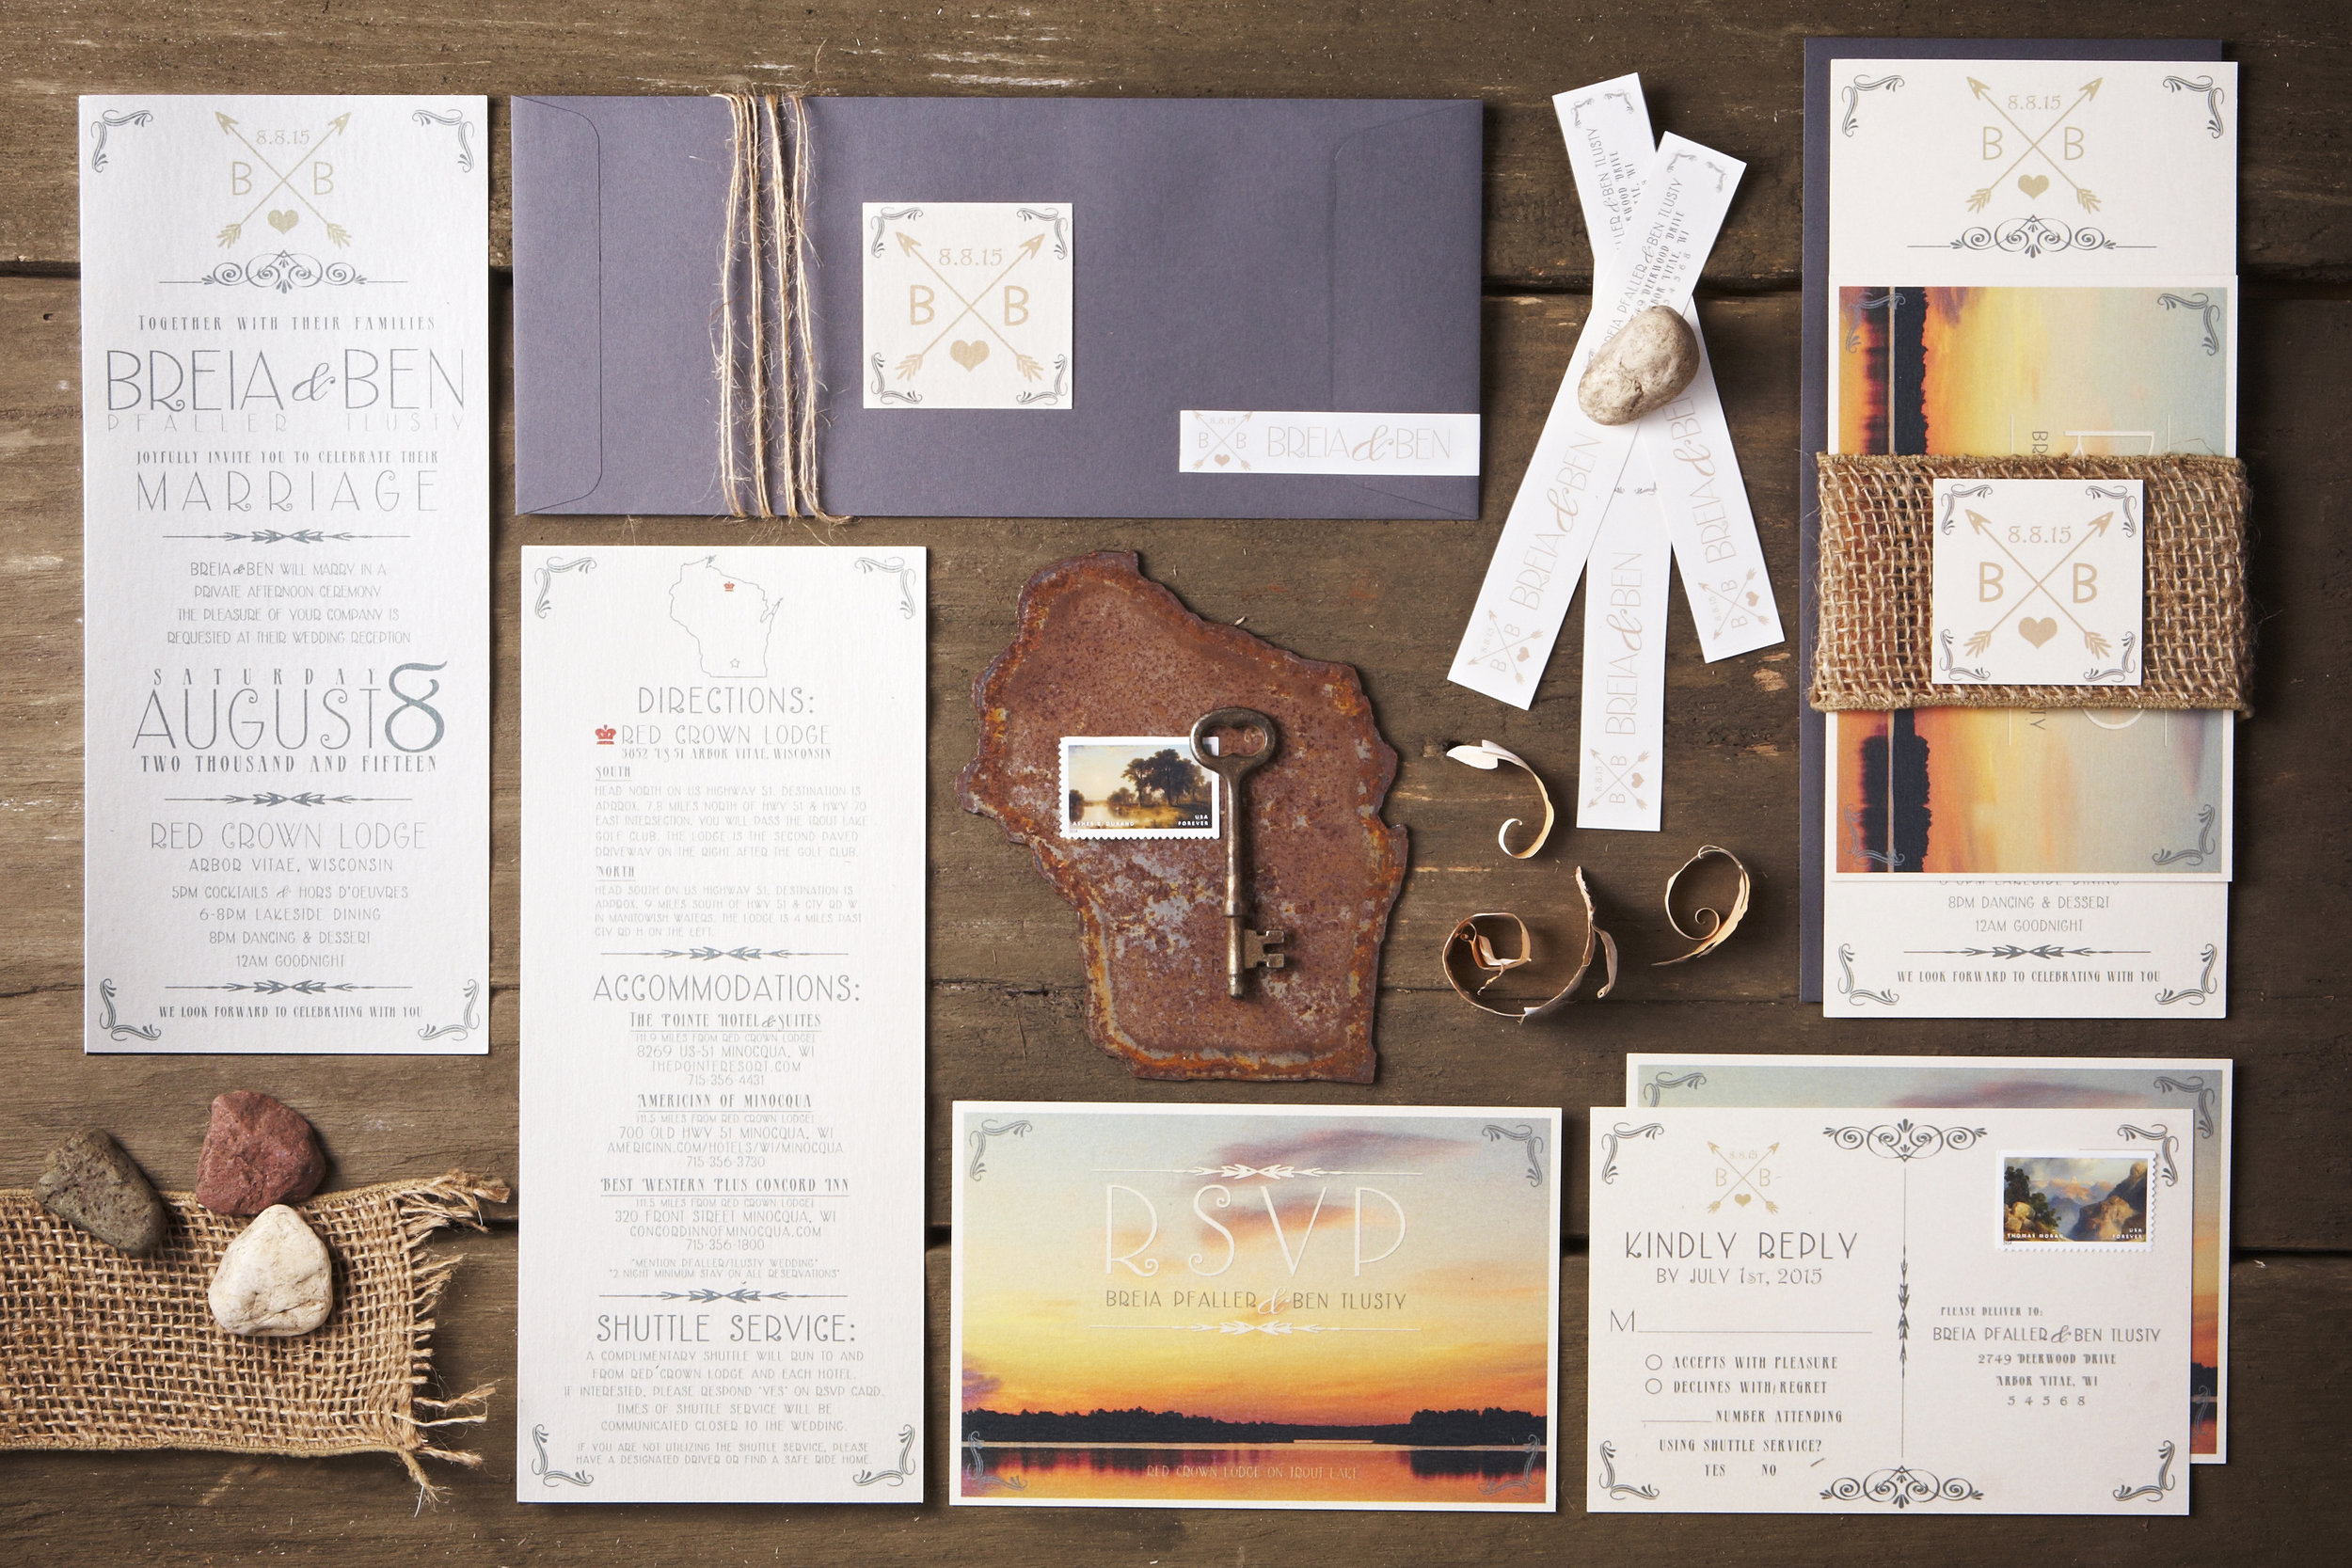 Breia_custom_wedding_invitation_huntwrightdesignco_007.jpg